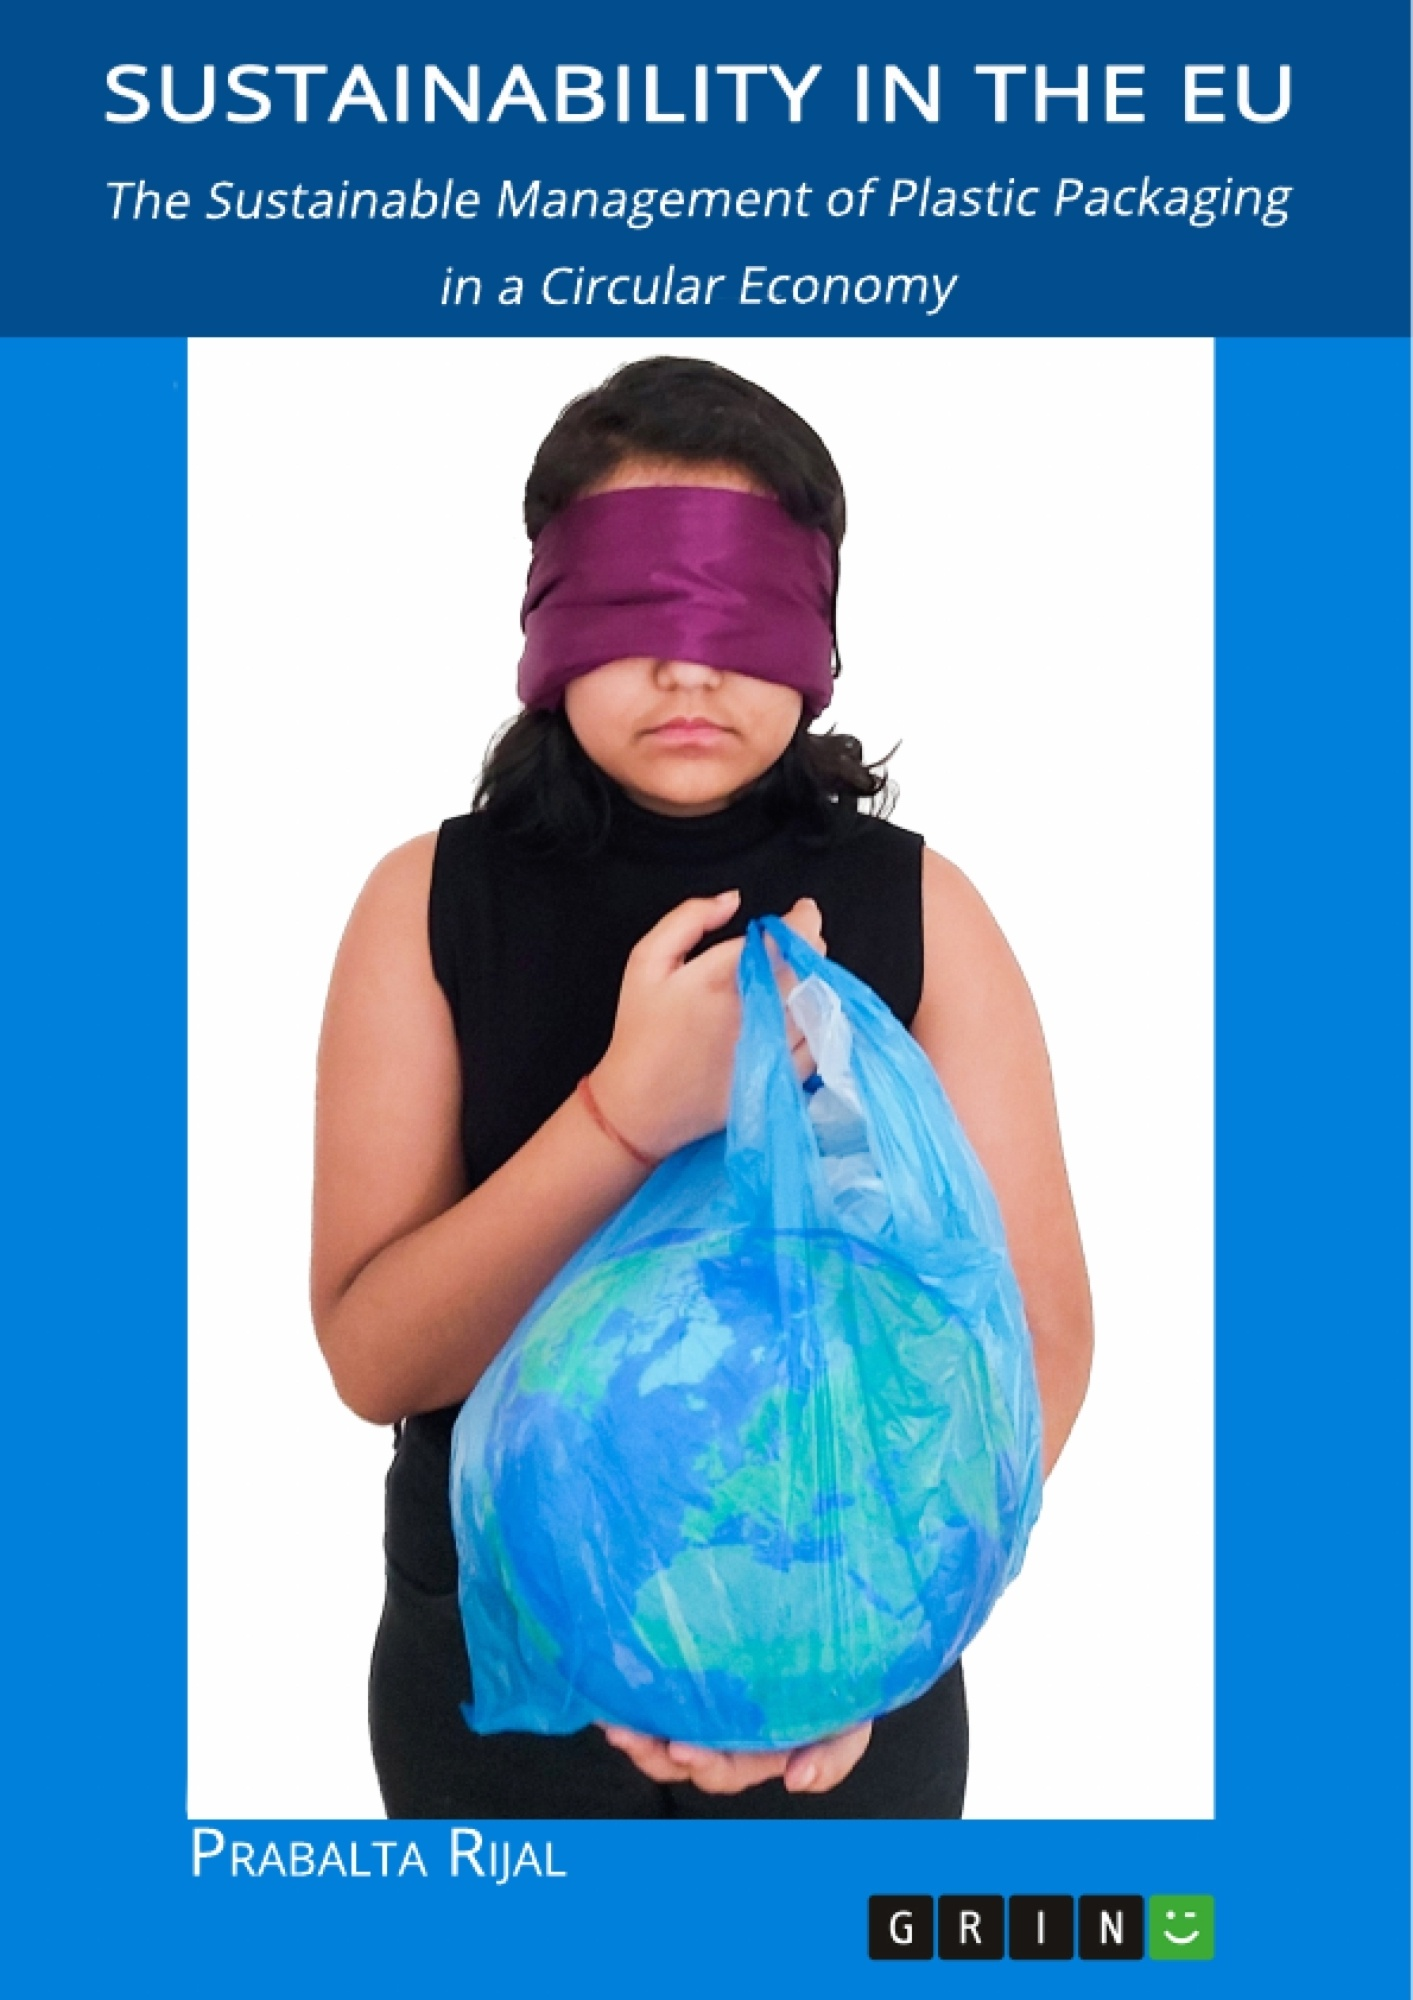 Title: Sustainability in the EU. The Sustainable Management of Plastic Packaging in a Circular Economy